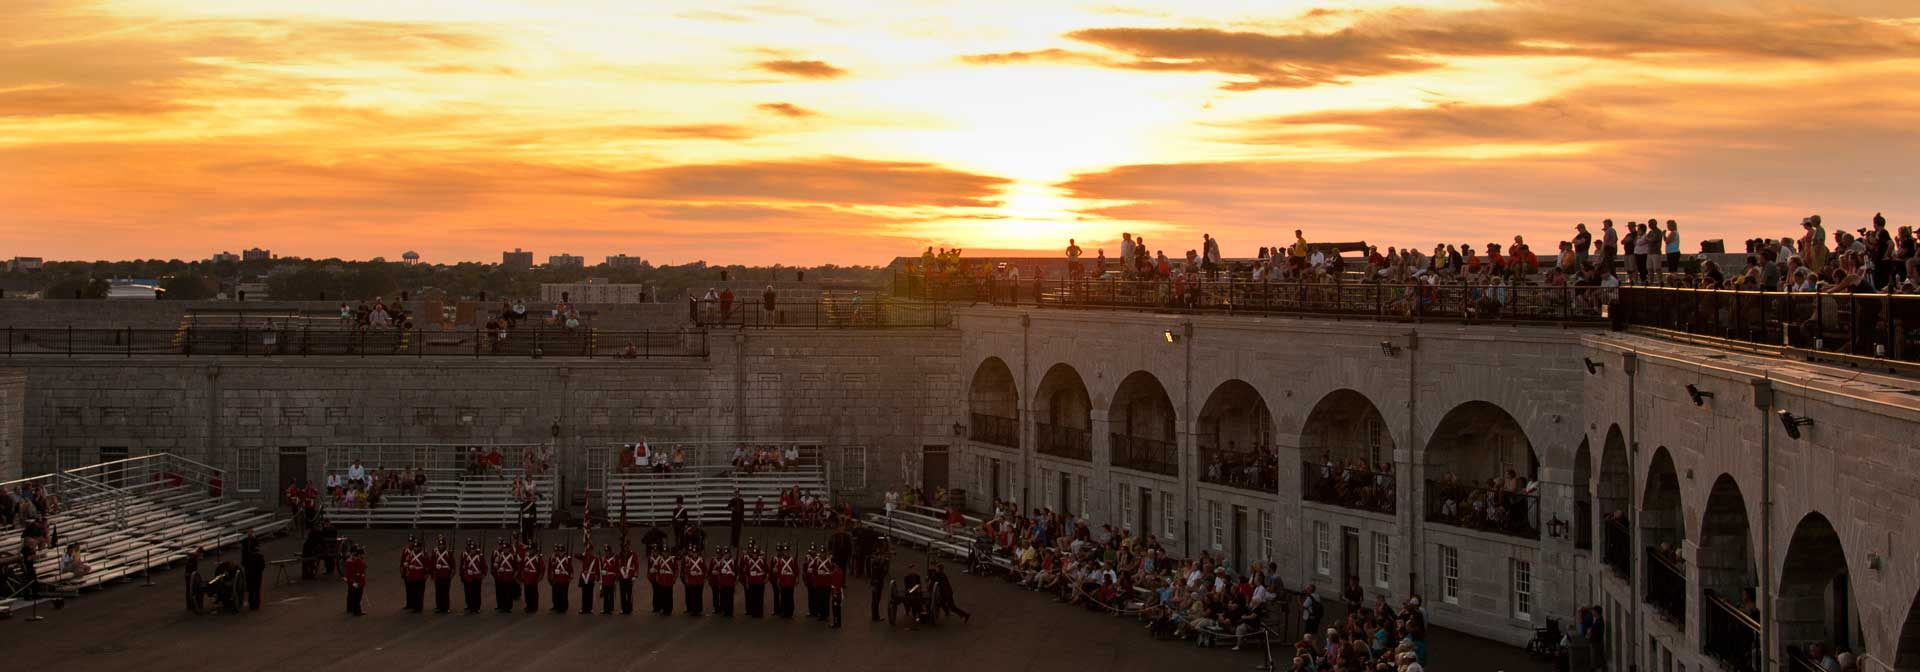 Military ceremony at Fort Henry